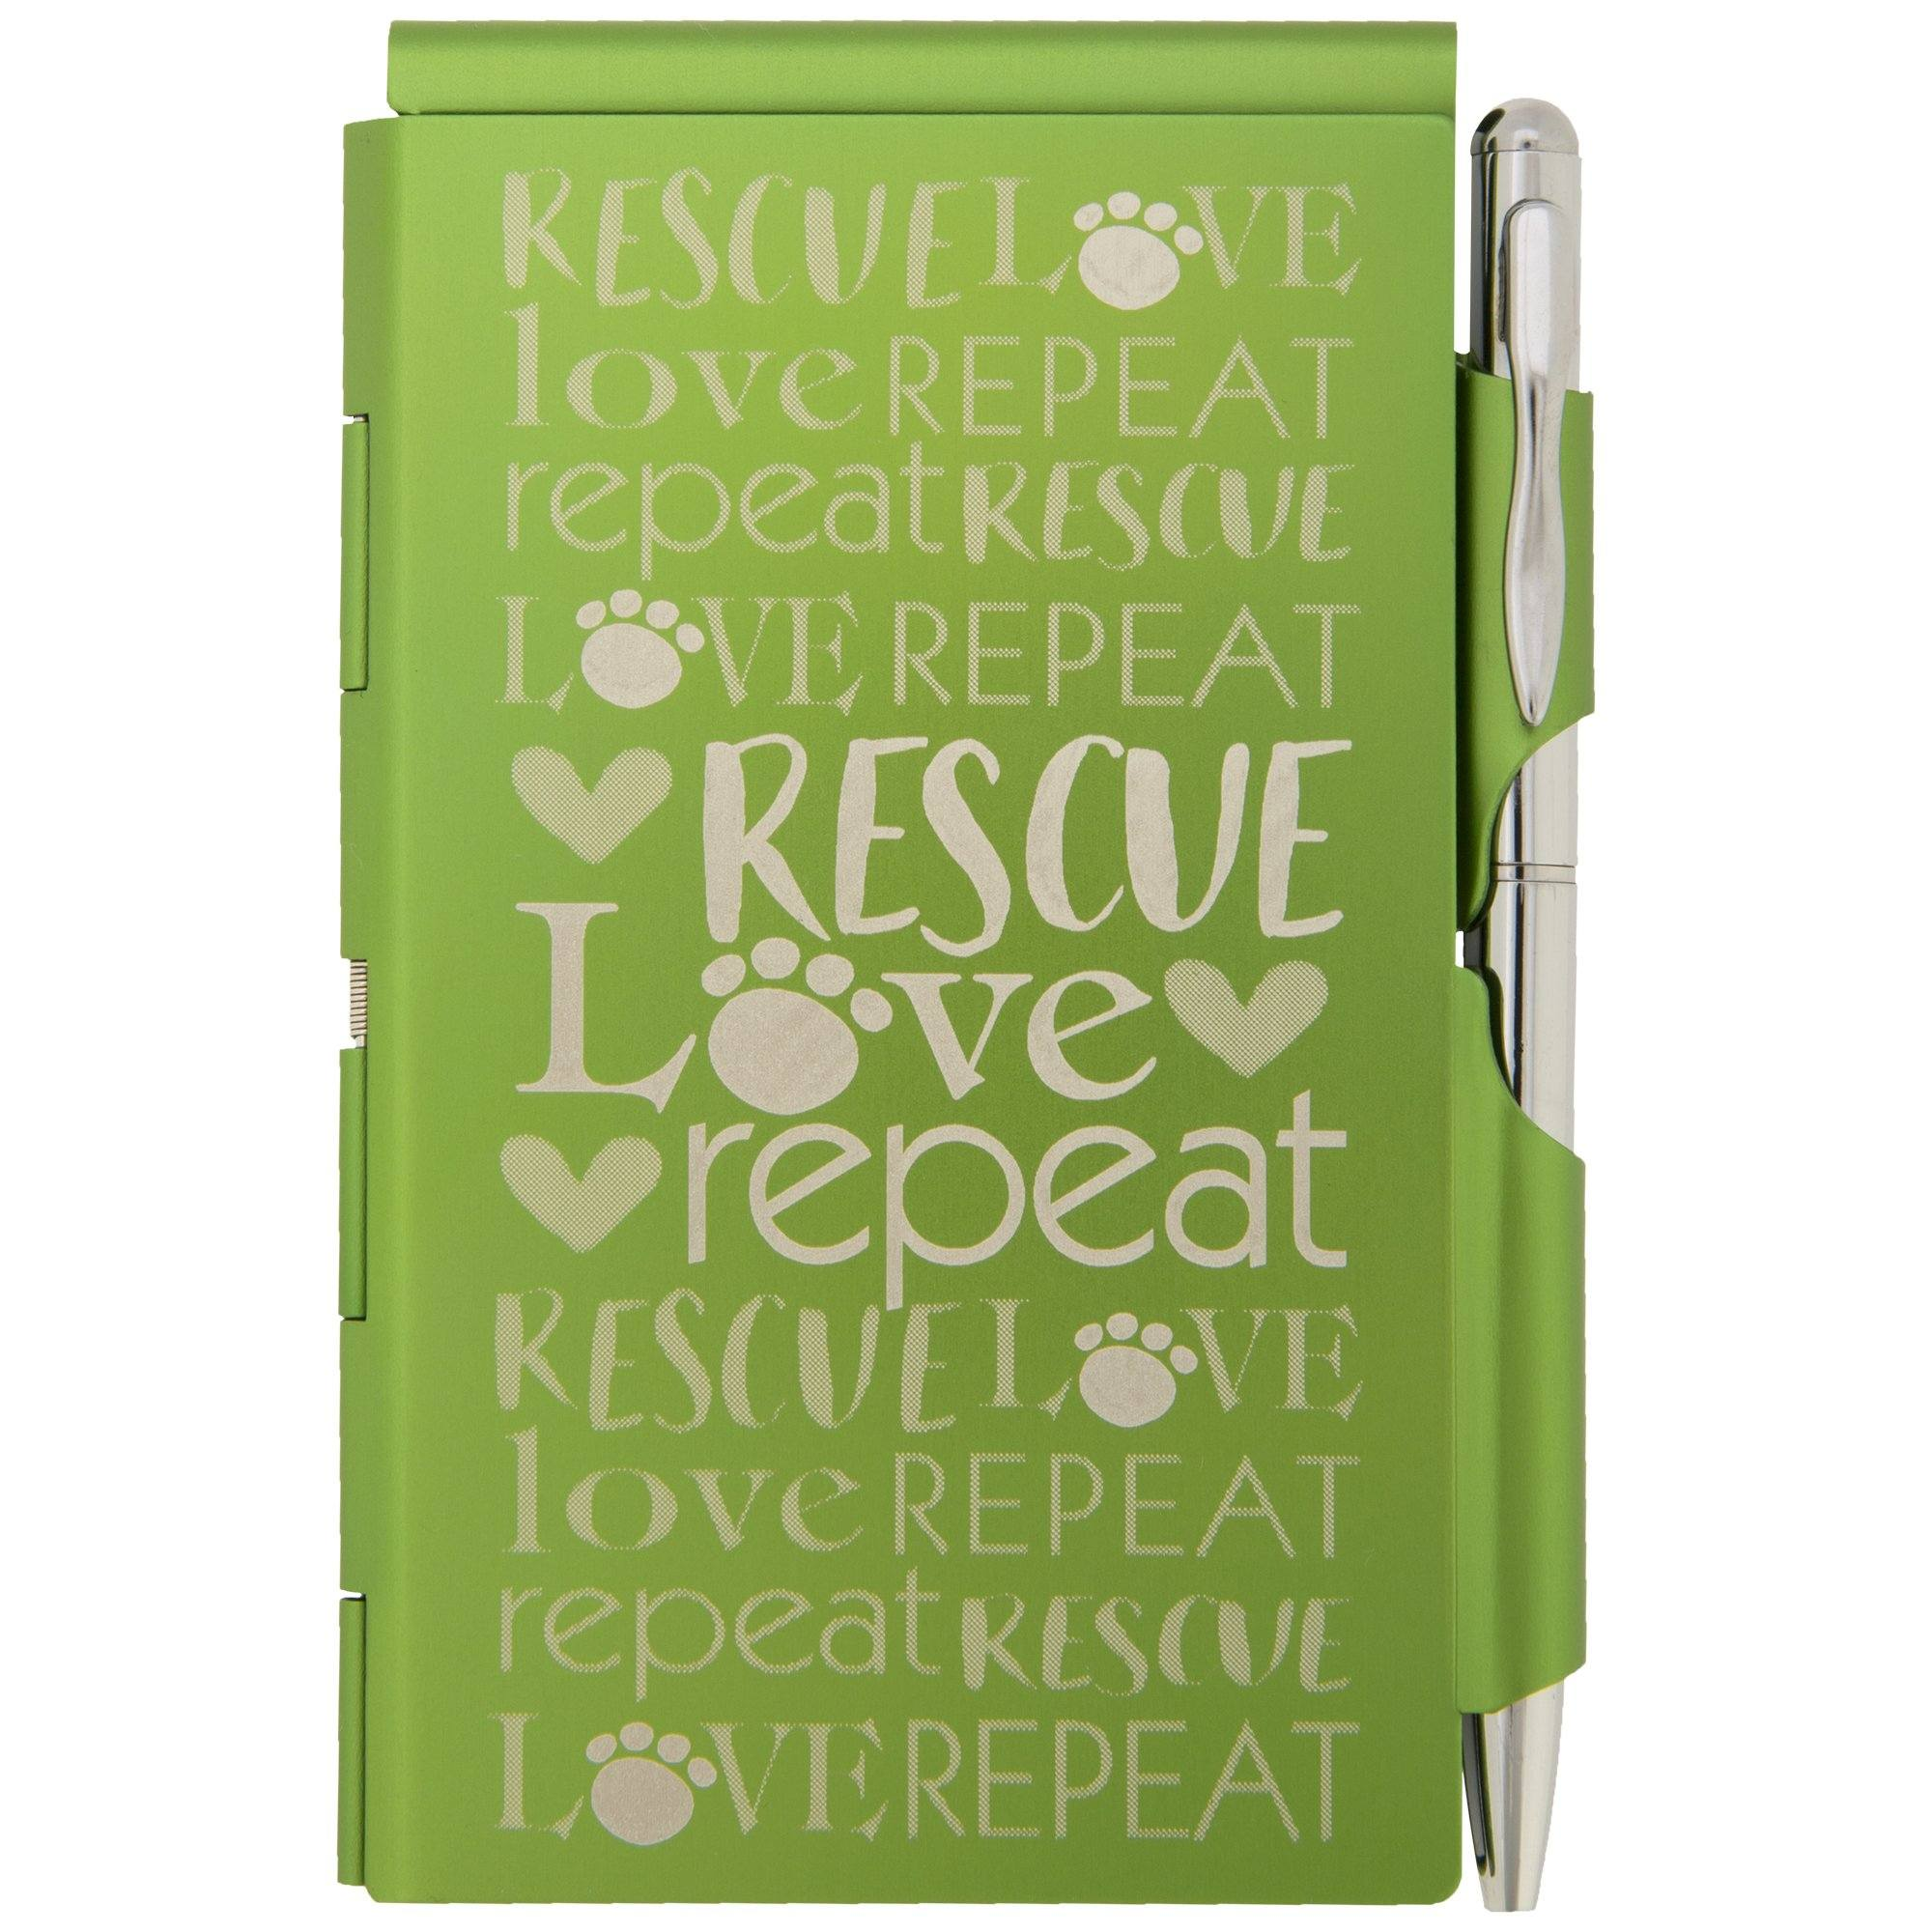 Rescues Are Love Notepad Personalized